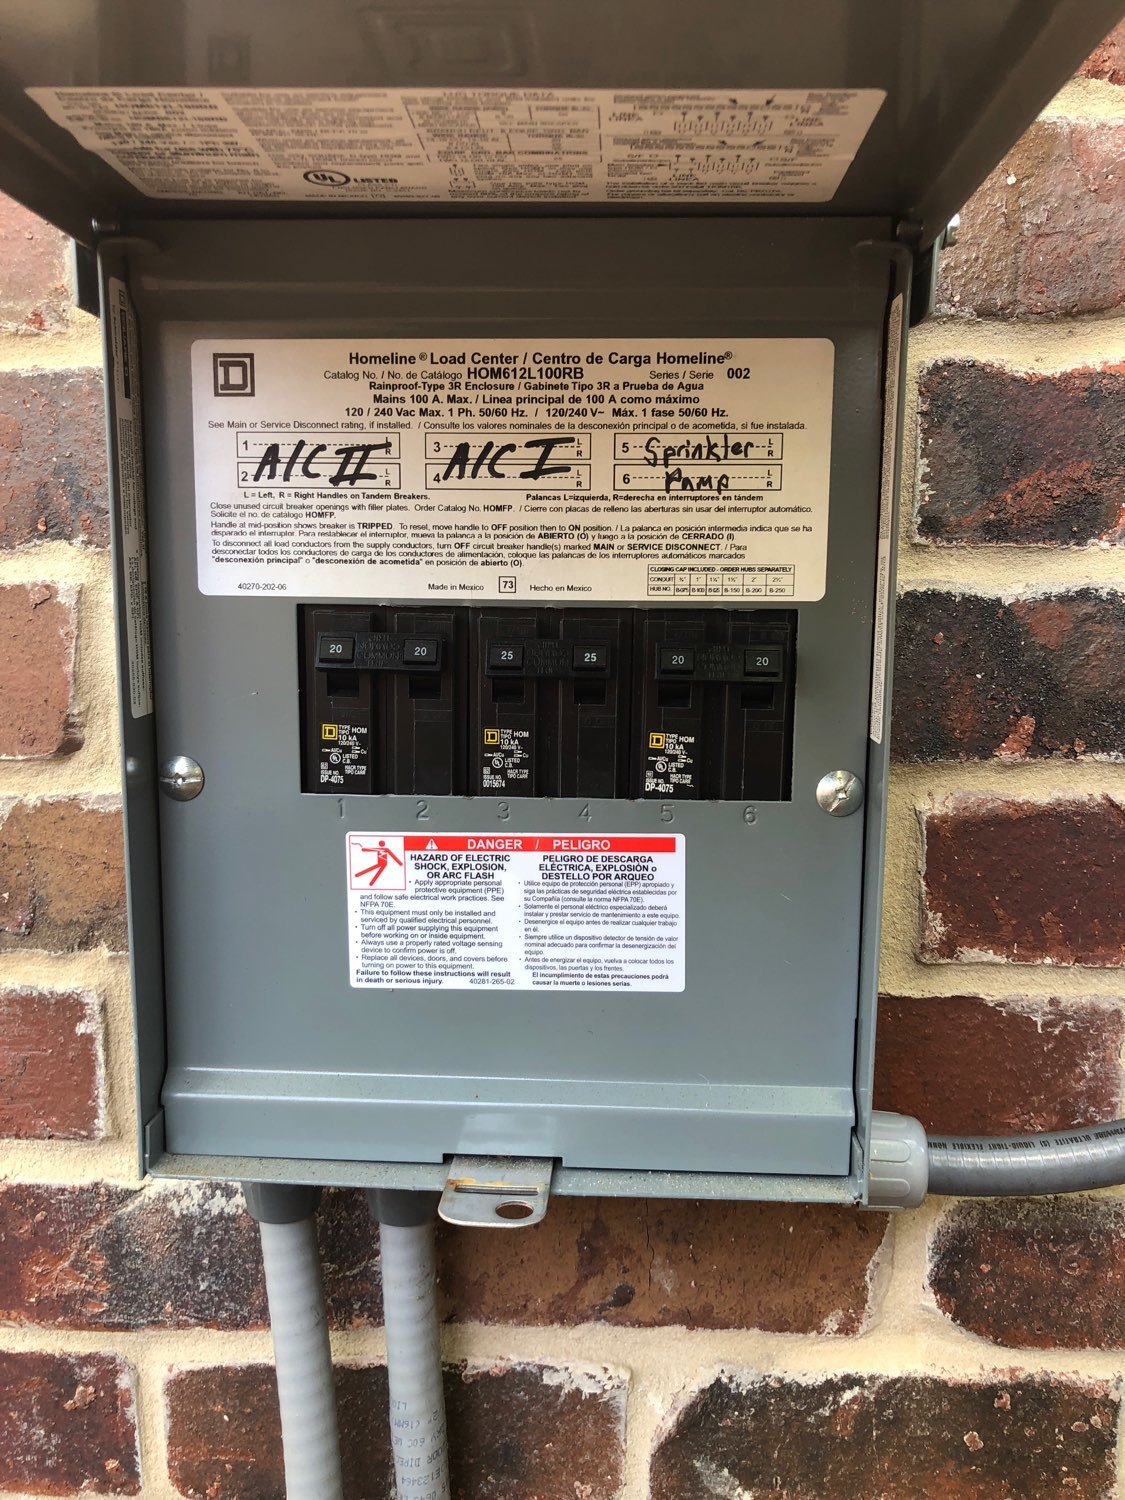 Sample Report Rest Ashore Home Inspection Llc Electrical Arc Fault Safety Advice For Homeowners Inspectors Outdoor Receptacles Test Reset Switches Are Located In The Garage If There Is Ever No Power To Exterior Check Gfci Outlet